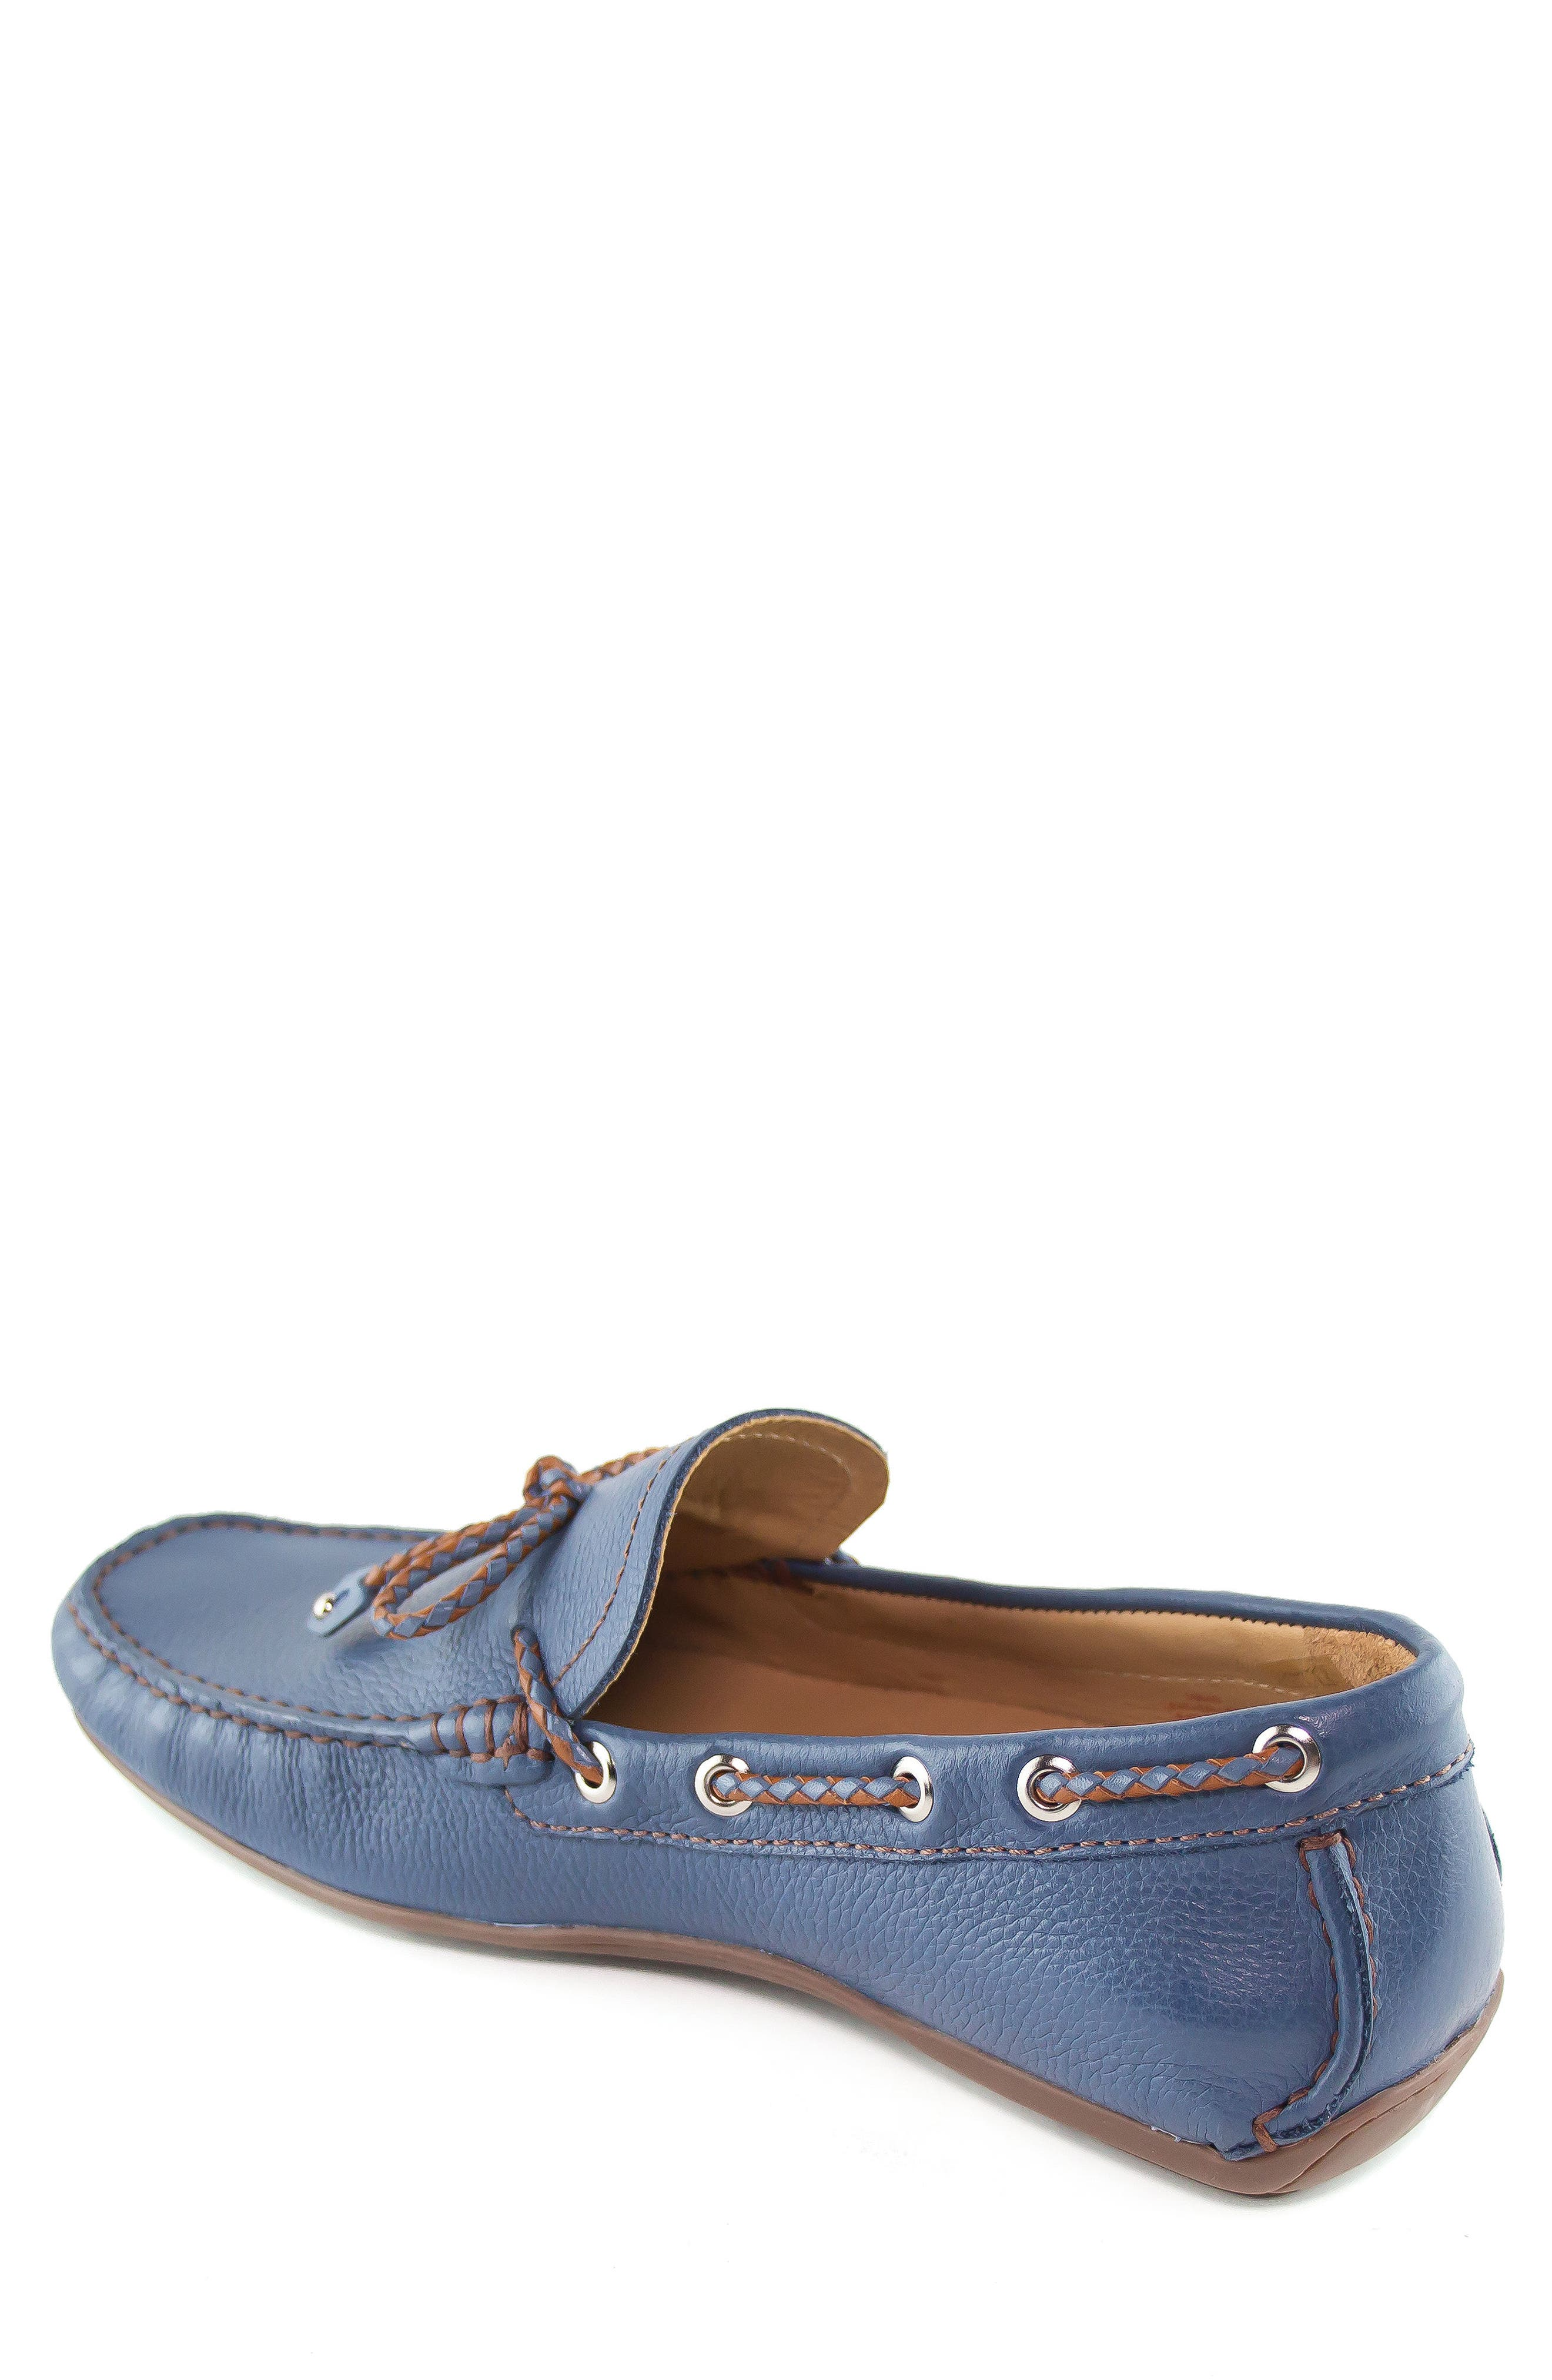 'Cypress' Moccasin,                             Alternate thumbnail 2, color,                             STEEL BLUE